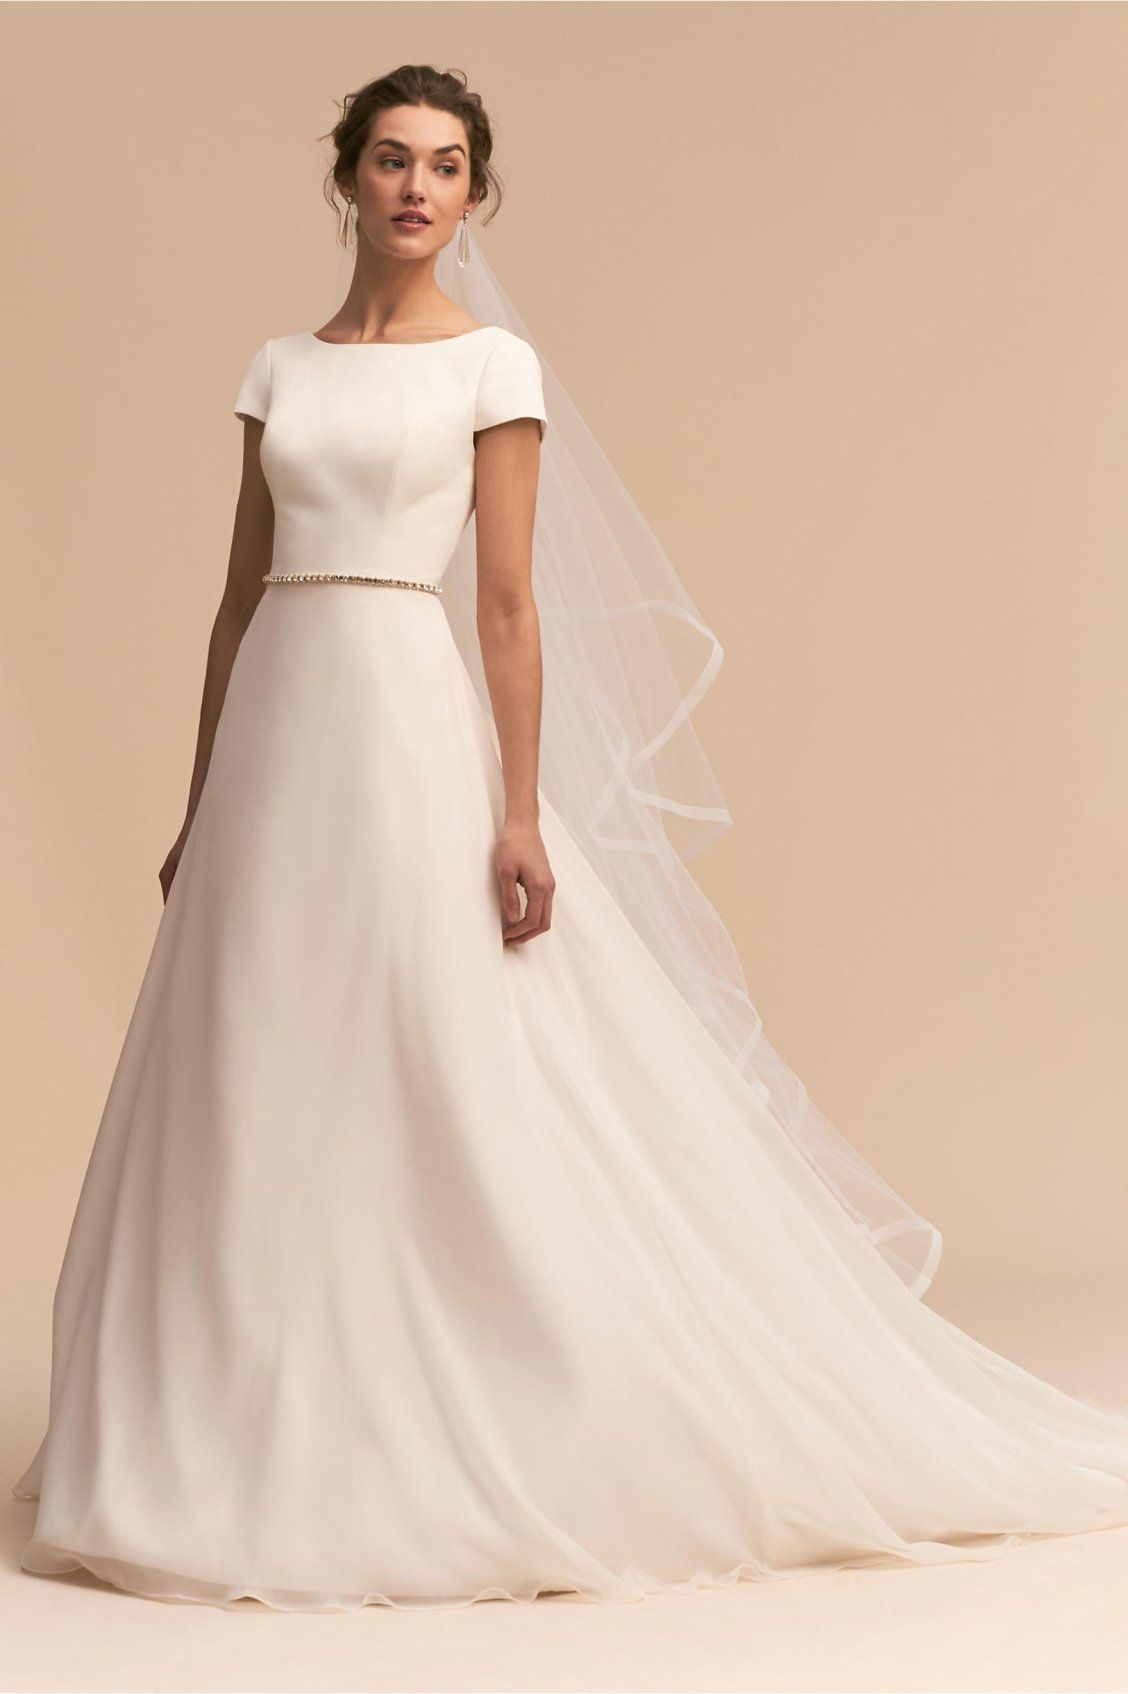 3b18c3b7b3c Crest Gown from BHLDN. Crest Gown from BHLDN Givenchy Wedding Dress